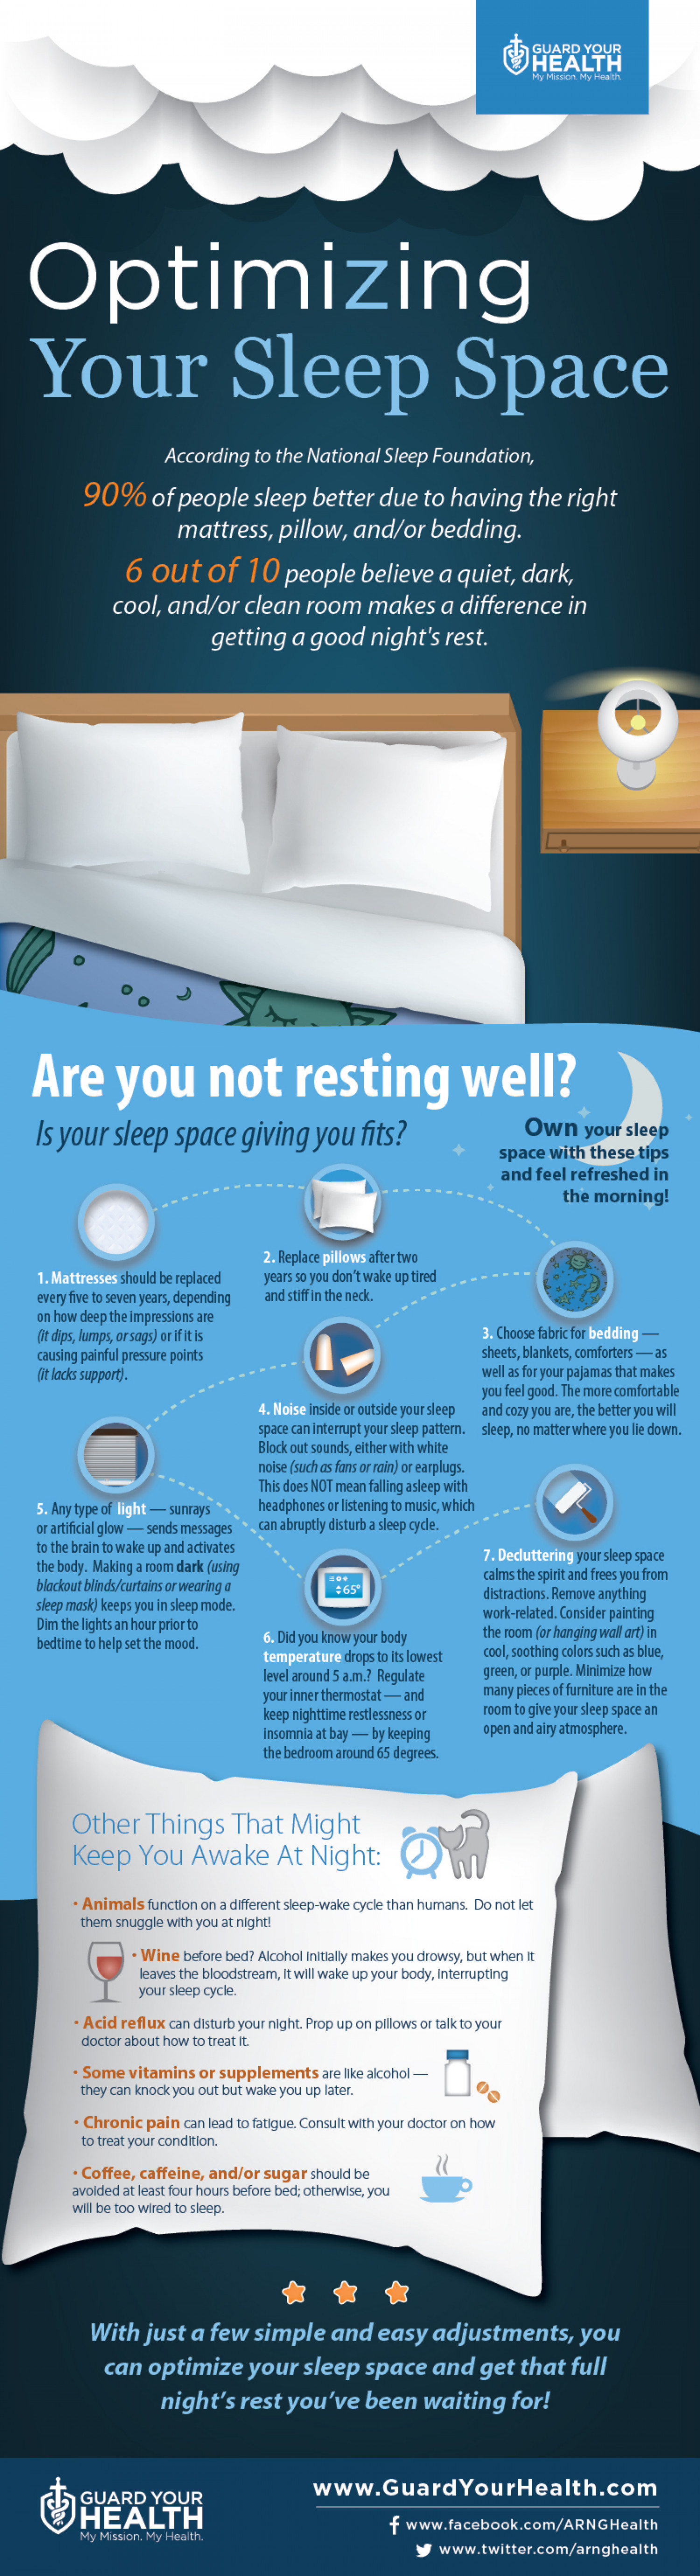 Optimizing Your Sleep Space Infographic